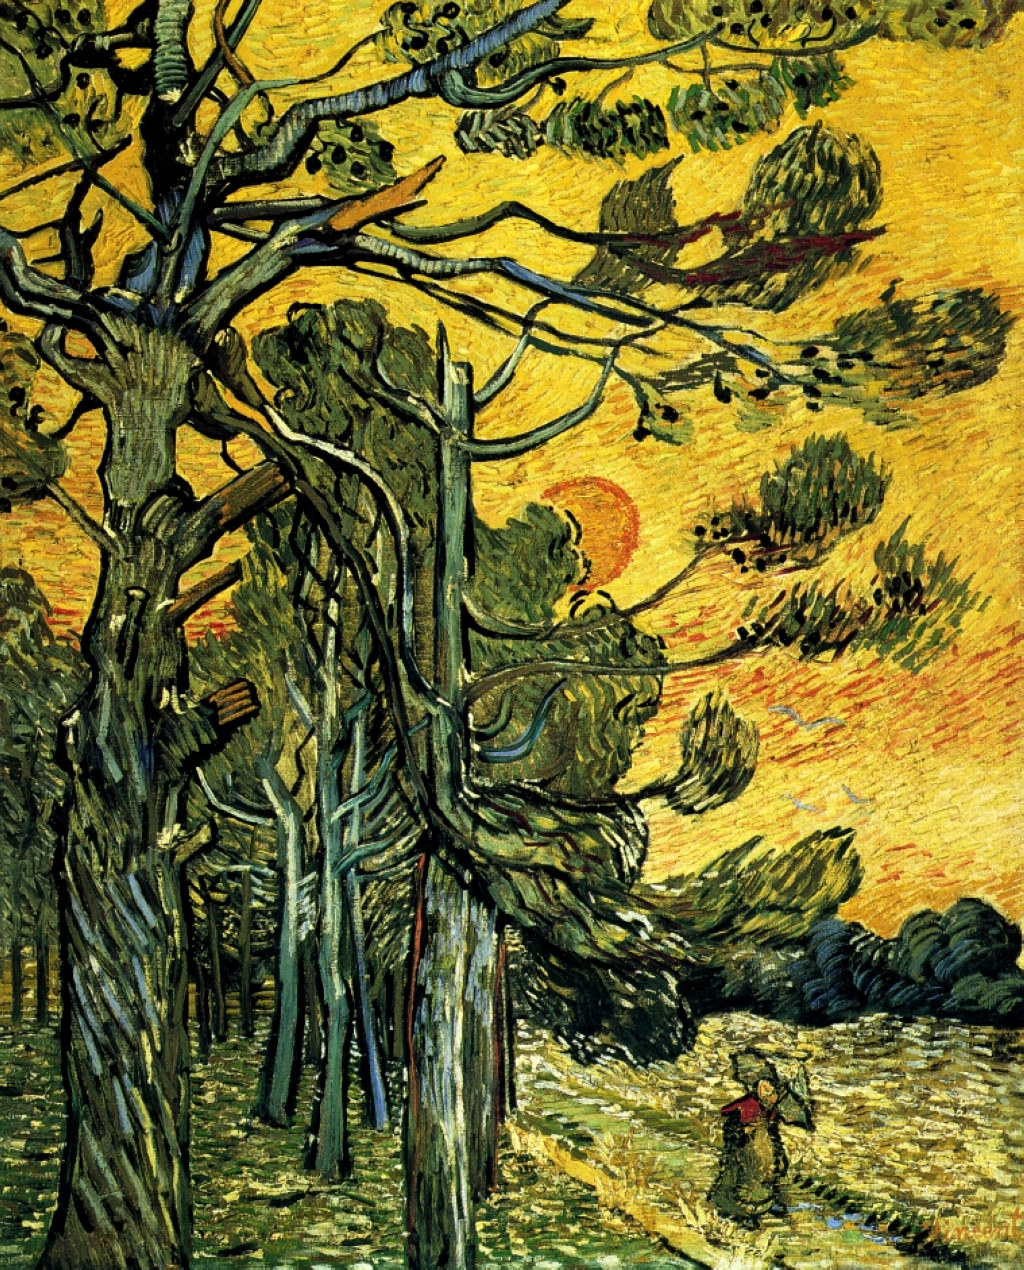 http://uploads1.wikiart.org/images/vincent-van-gogh/pine-trees-against-a-red-sky-with-setting-sun-1889.jpg